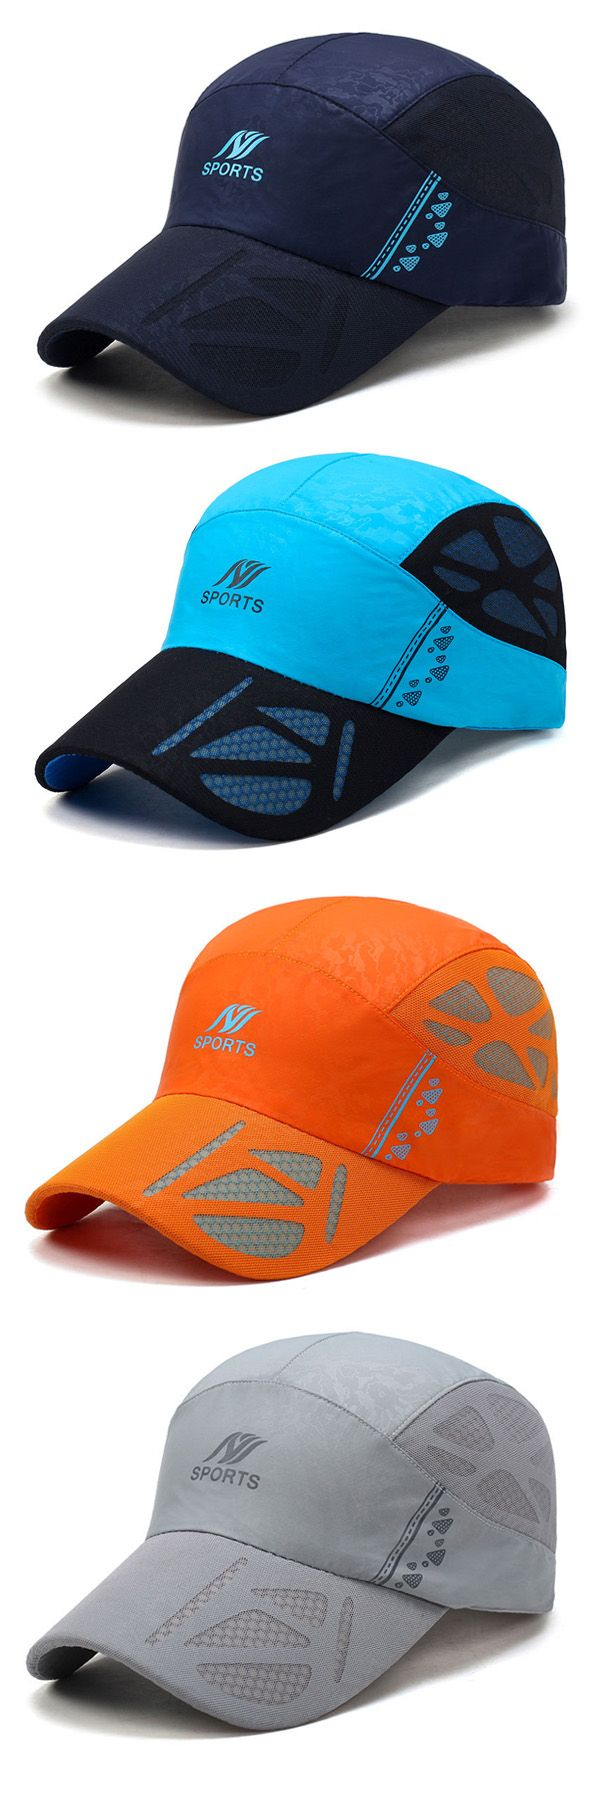 $8.68 Ultra-thin Breathable Quick-drying Mesh Baseball Cap, Outdoor Casual Carved Net Hat,Sport Cap For Men,Quick-drying Outdoor Cap